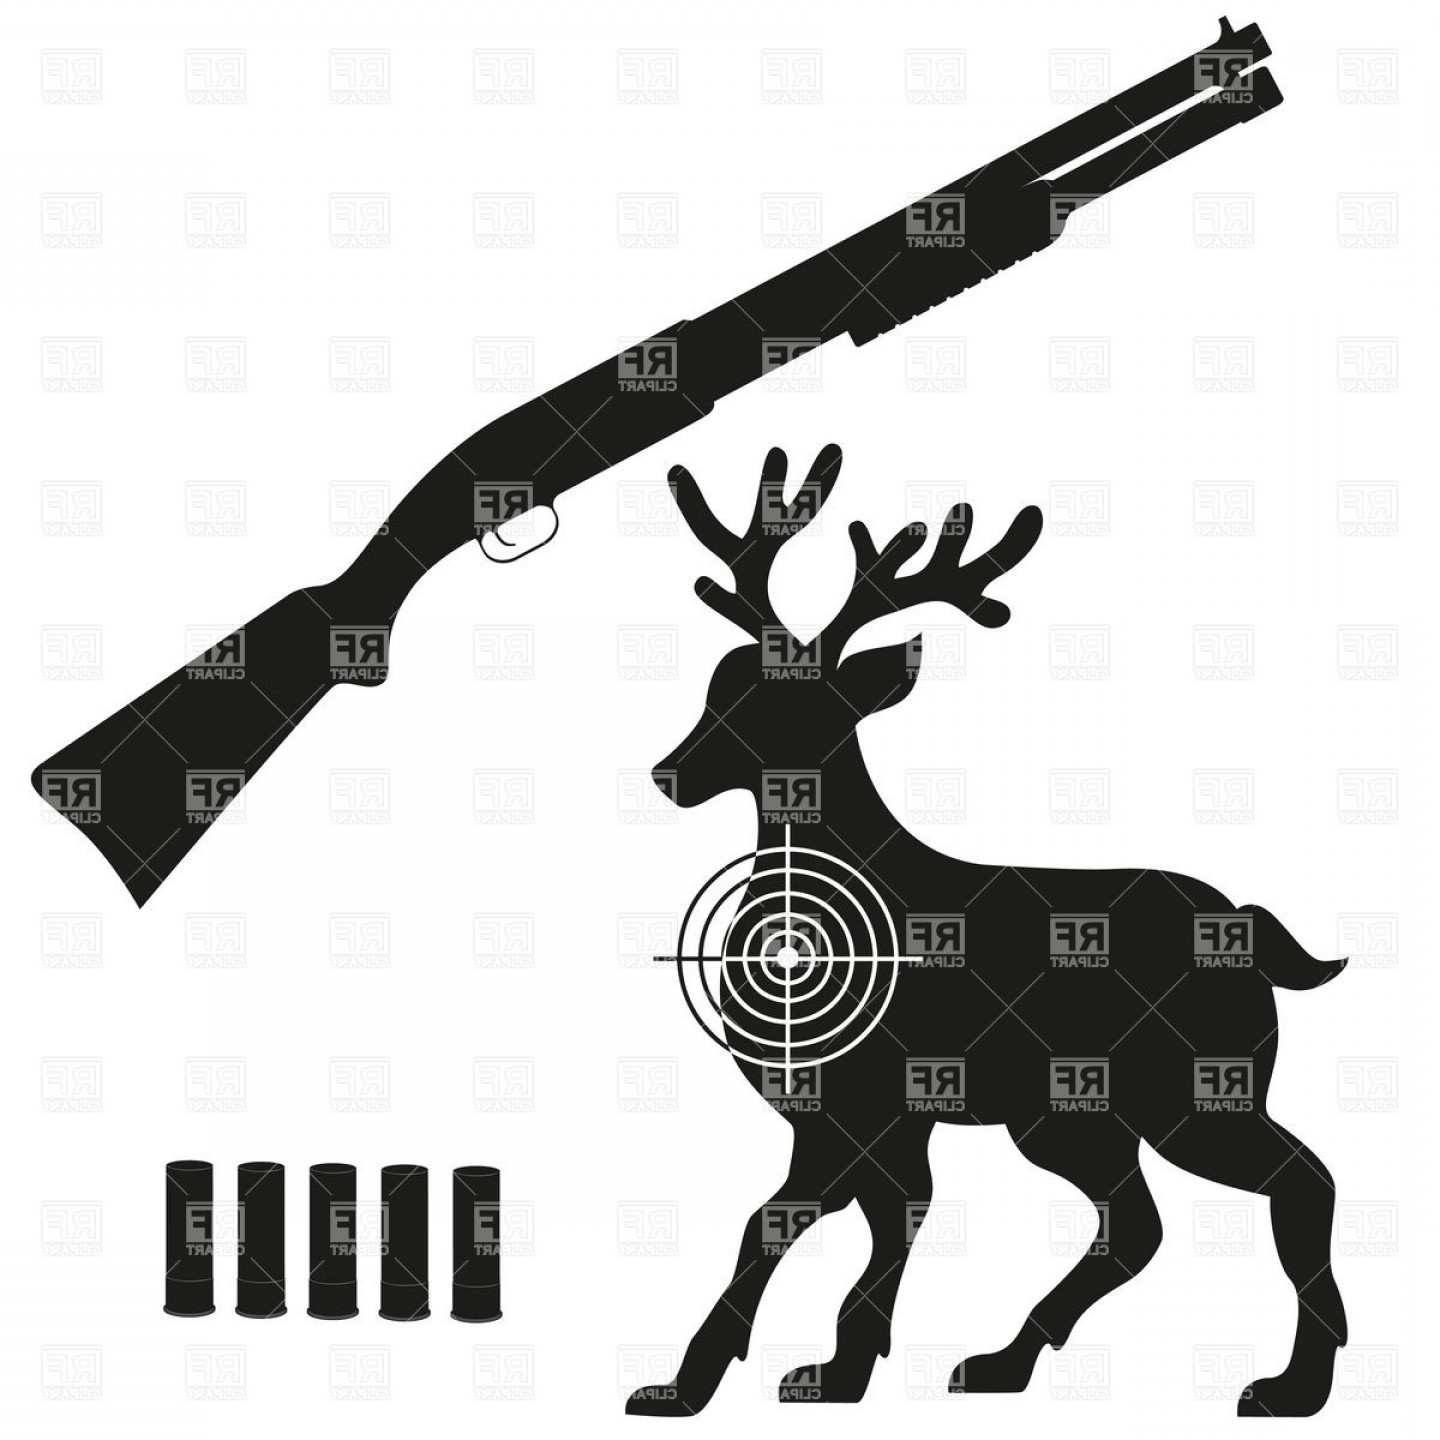 Vector Clip Art Hunting: Hunting Shotgun Aimed On Deer Black Silhouette Vector Clipart